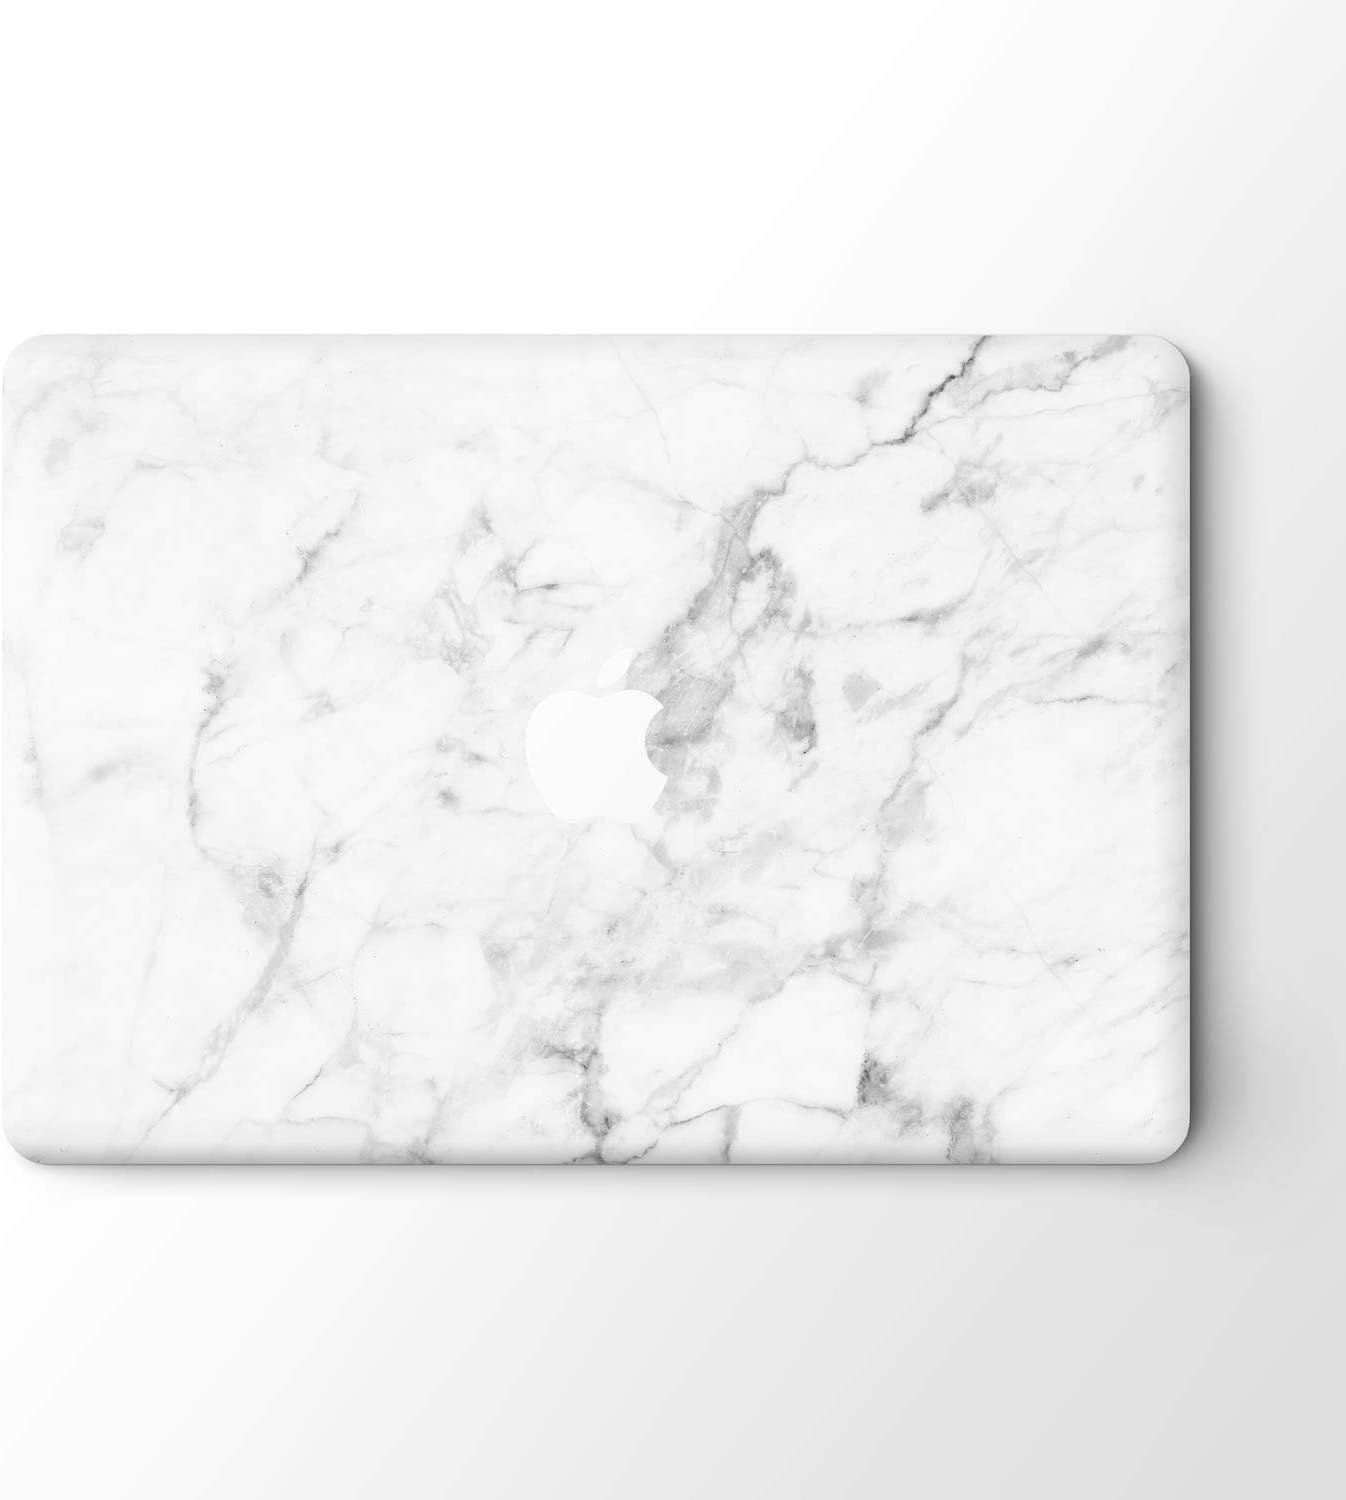 "DowBier MacBook Decal Vinyl Skin Sticker Cover Anti-Scratch Decal for Apple MacBook (MacBook Pro 15""/Inch Retina(A1398), White Marble)"